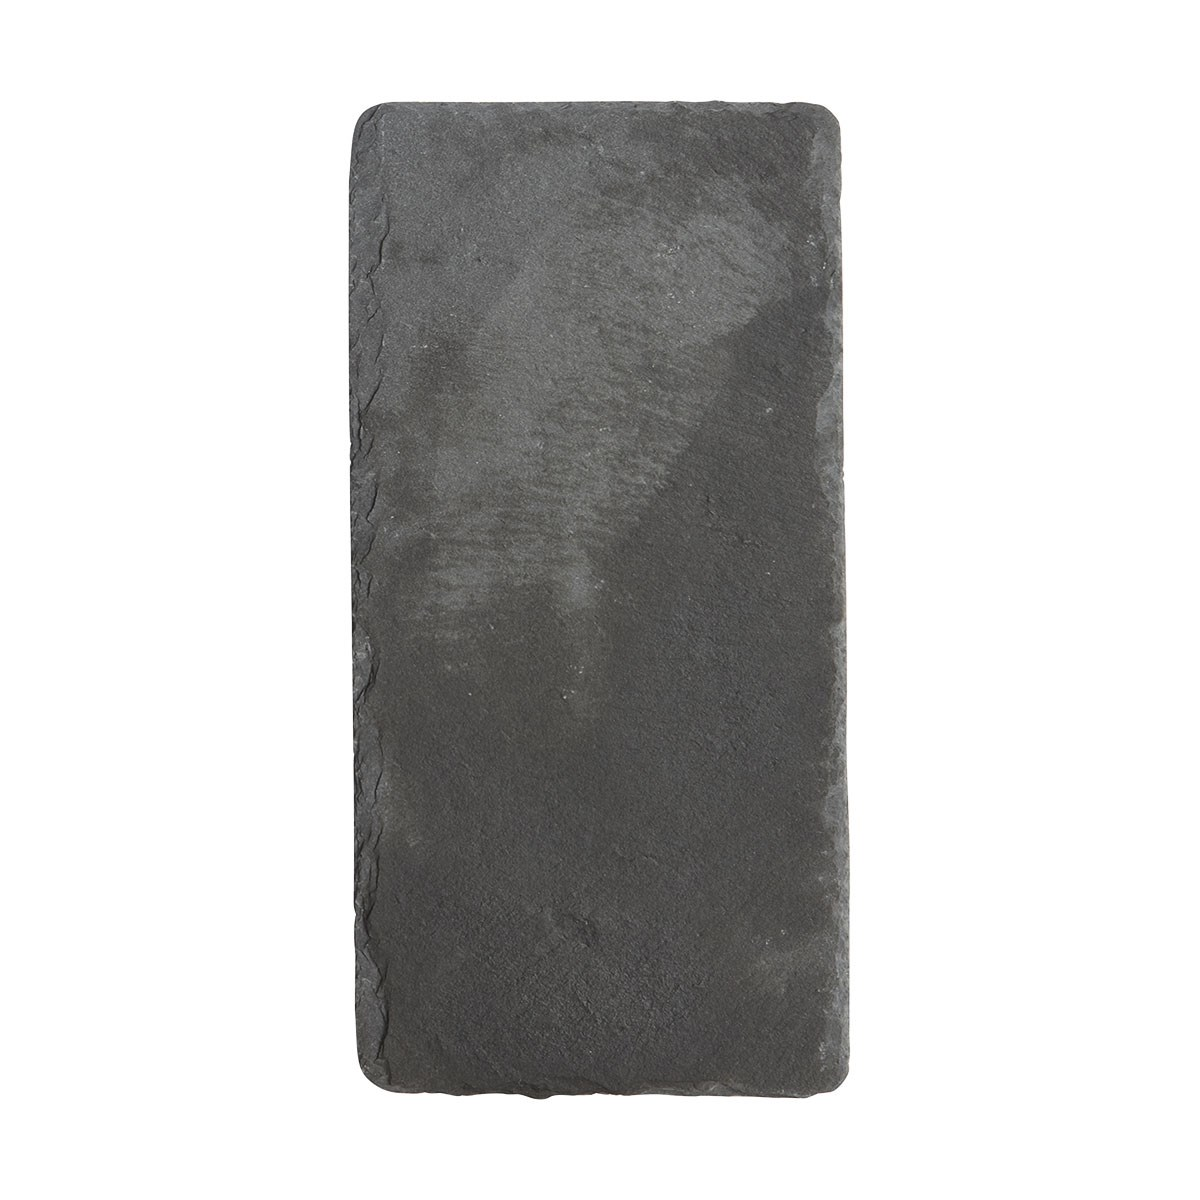 Slate board, Serve, 20x12x0.8 cm_0